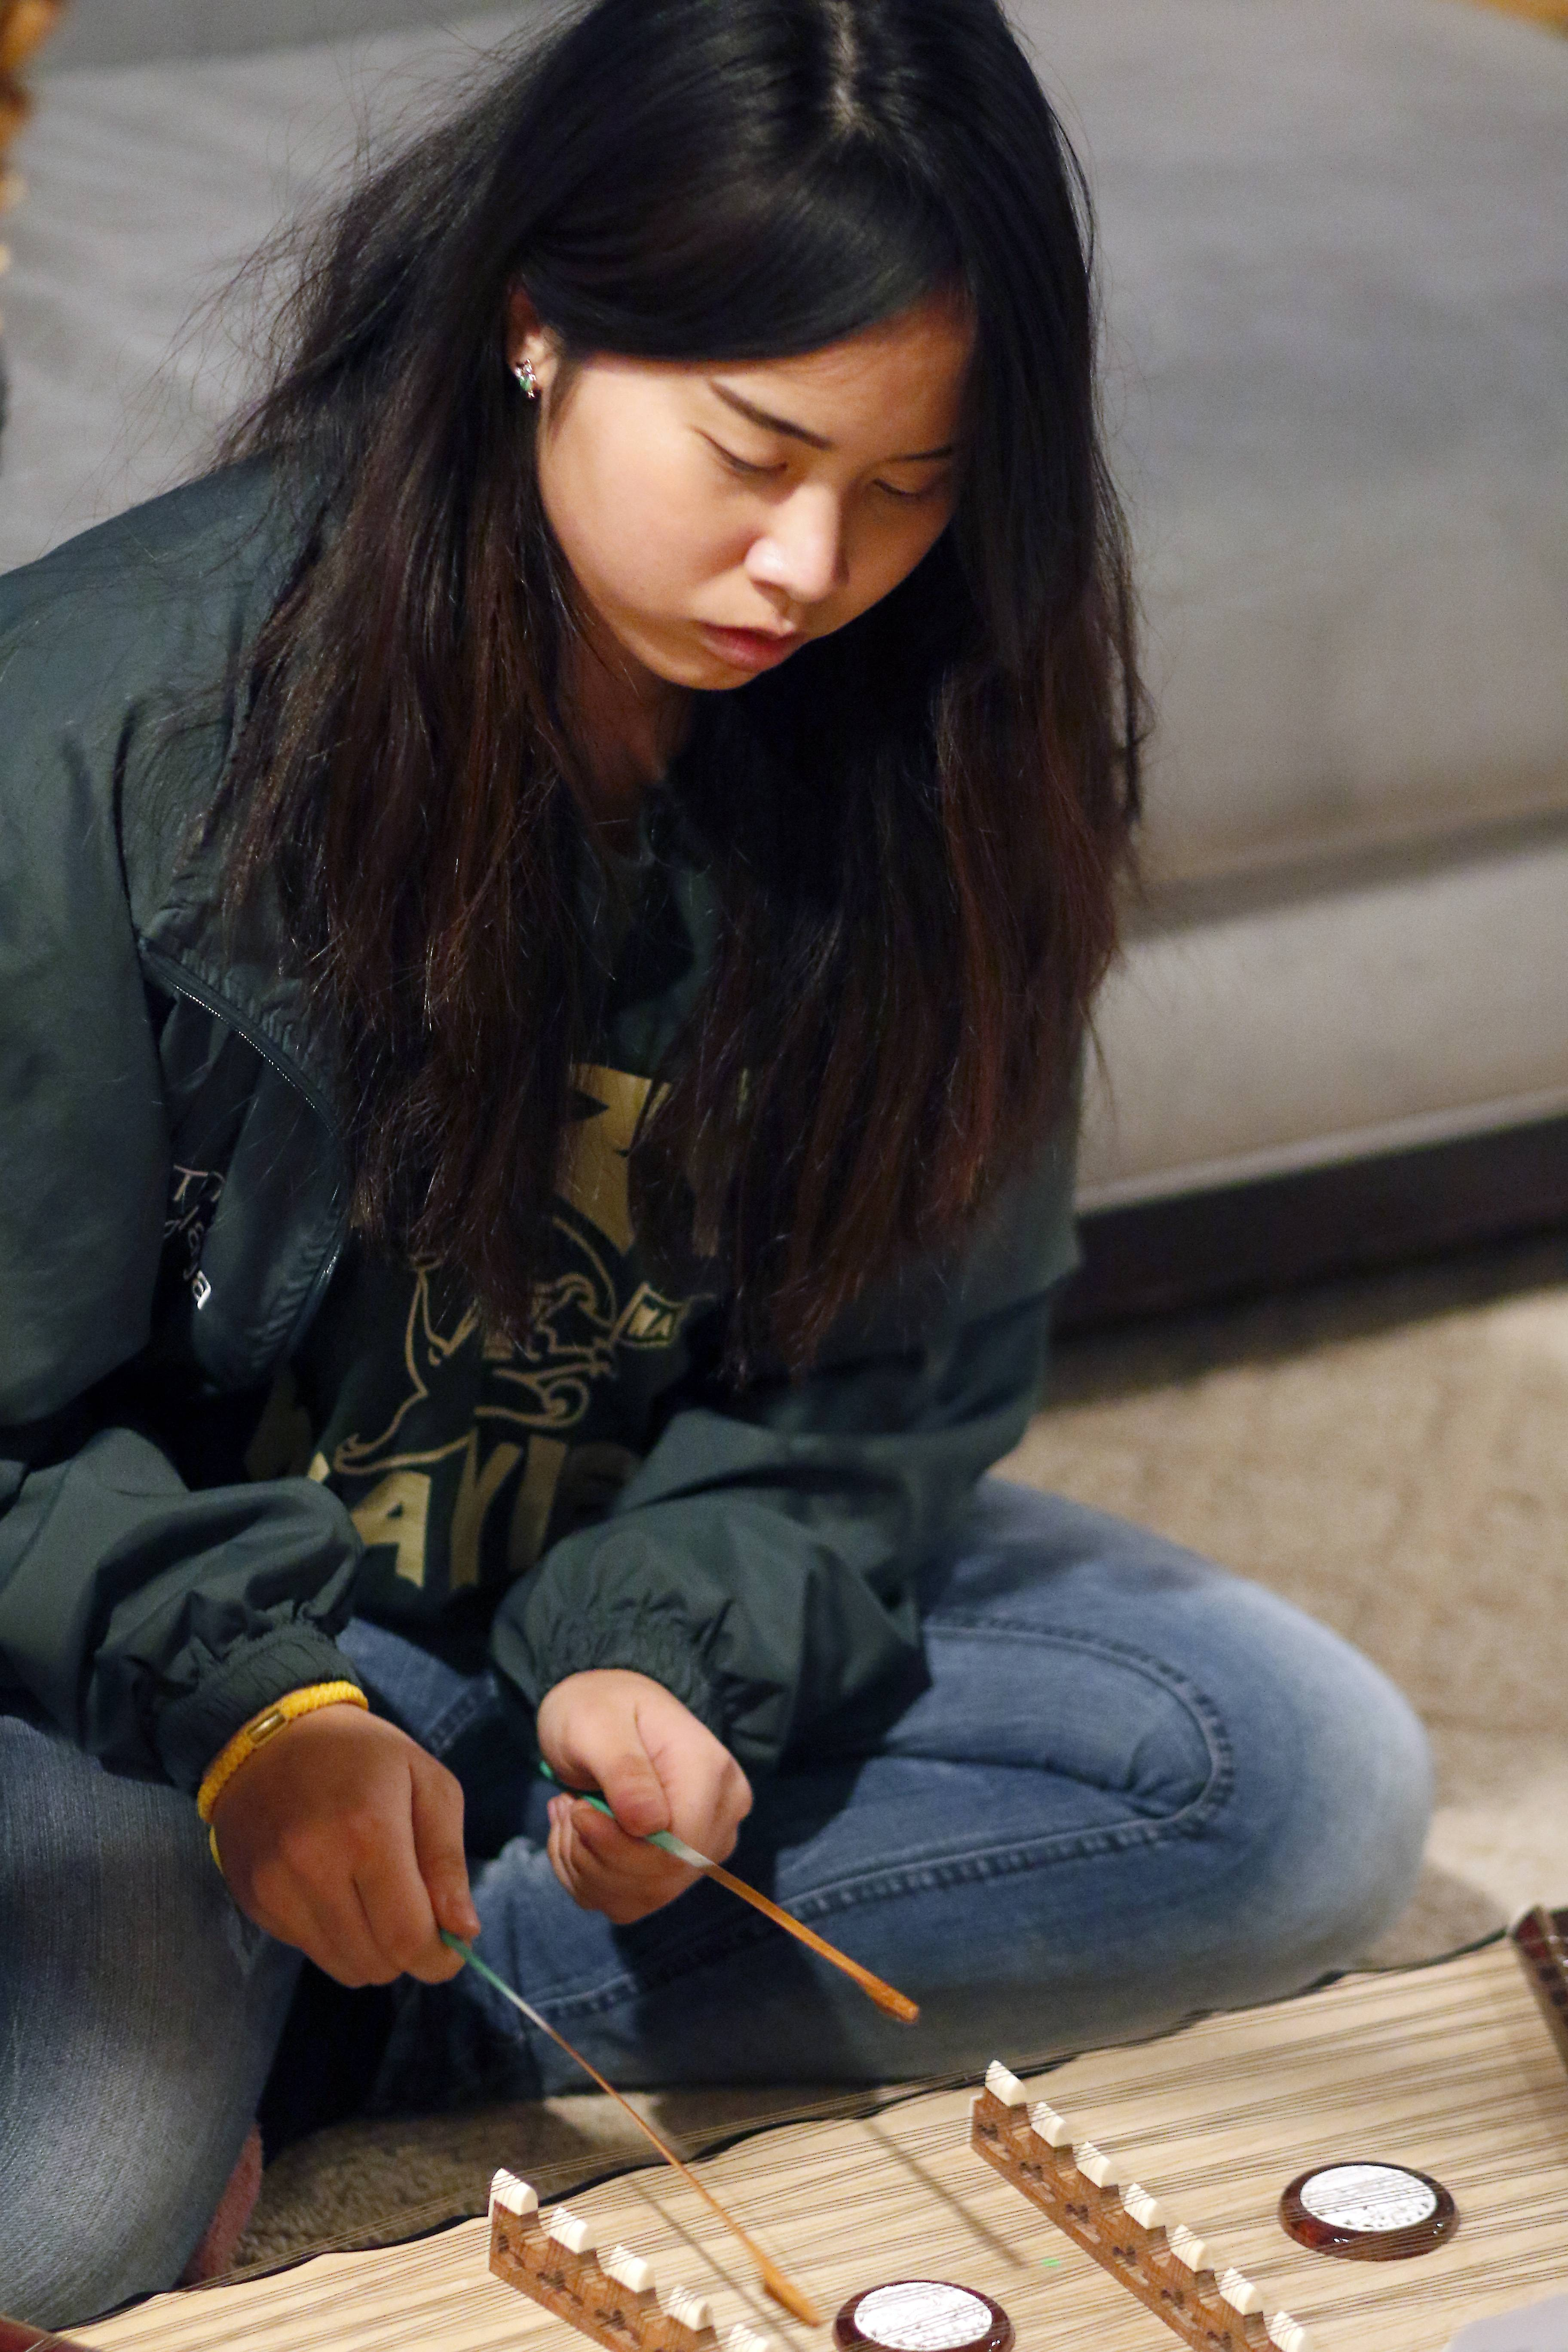 Tiffany Keokanlaya, 16, of South Elgin rehearses the khim, a traditional Lao instrument. The Lan Xang Traditional Lao Music & Dance Troupe aims to preserve Lao arts, music and culture.